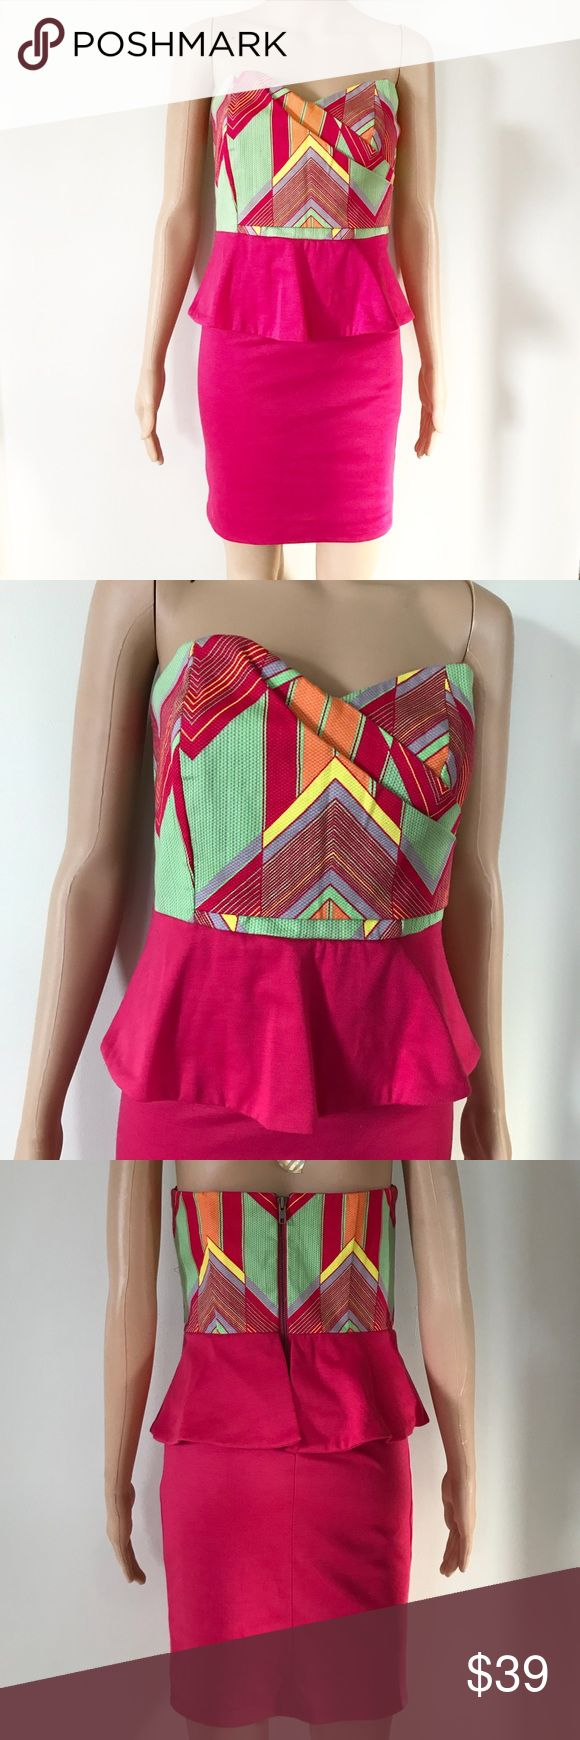 "Judith March Strapless Zig Zag Peplum Dress Judith March Coastal Zig Zag aztec strapless peplum dress. Super cute party dress! • Excellent condition, like new • Asymmetrical sweetheart neckline • Hot pink / fuchsia colors with lime green, orange, and yellow • Zip Up closure  • Cotton spandex blend, skirt has good stretch • Style 728D-1  • Approx. measurements when laid flat: 32"" bust, 28"" Waist, 25.5"" length Judith March Dresses Mini"